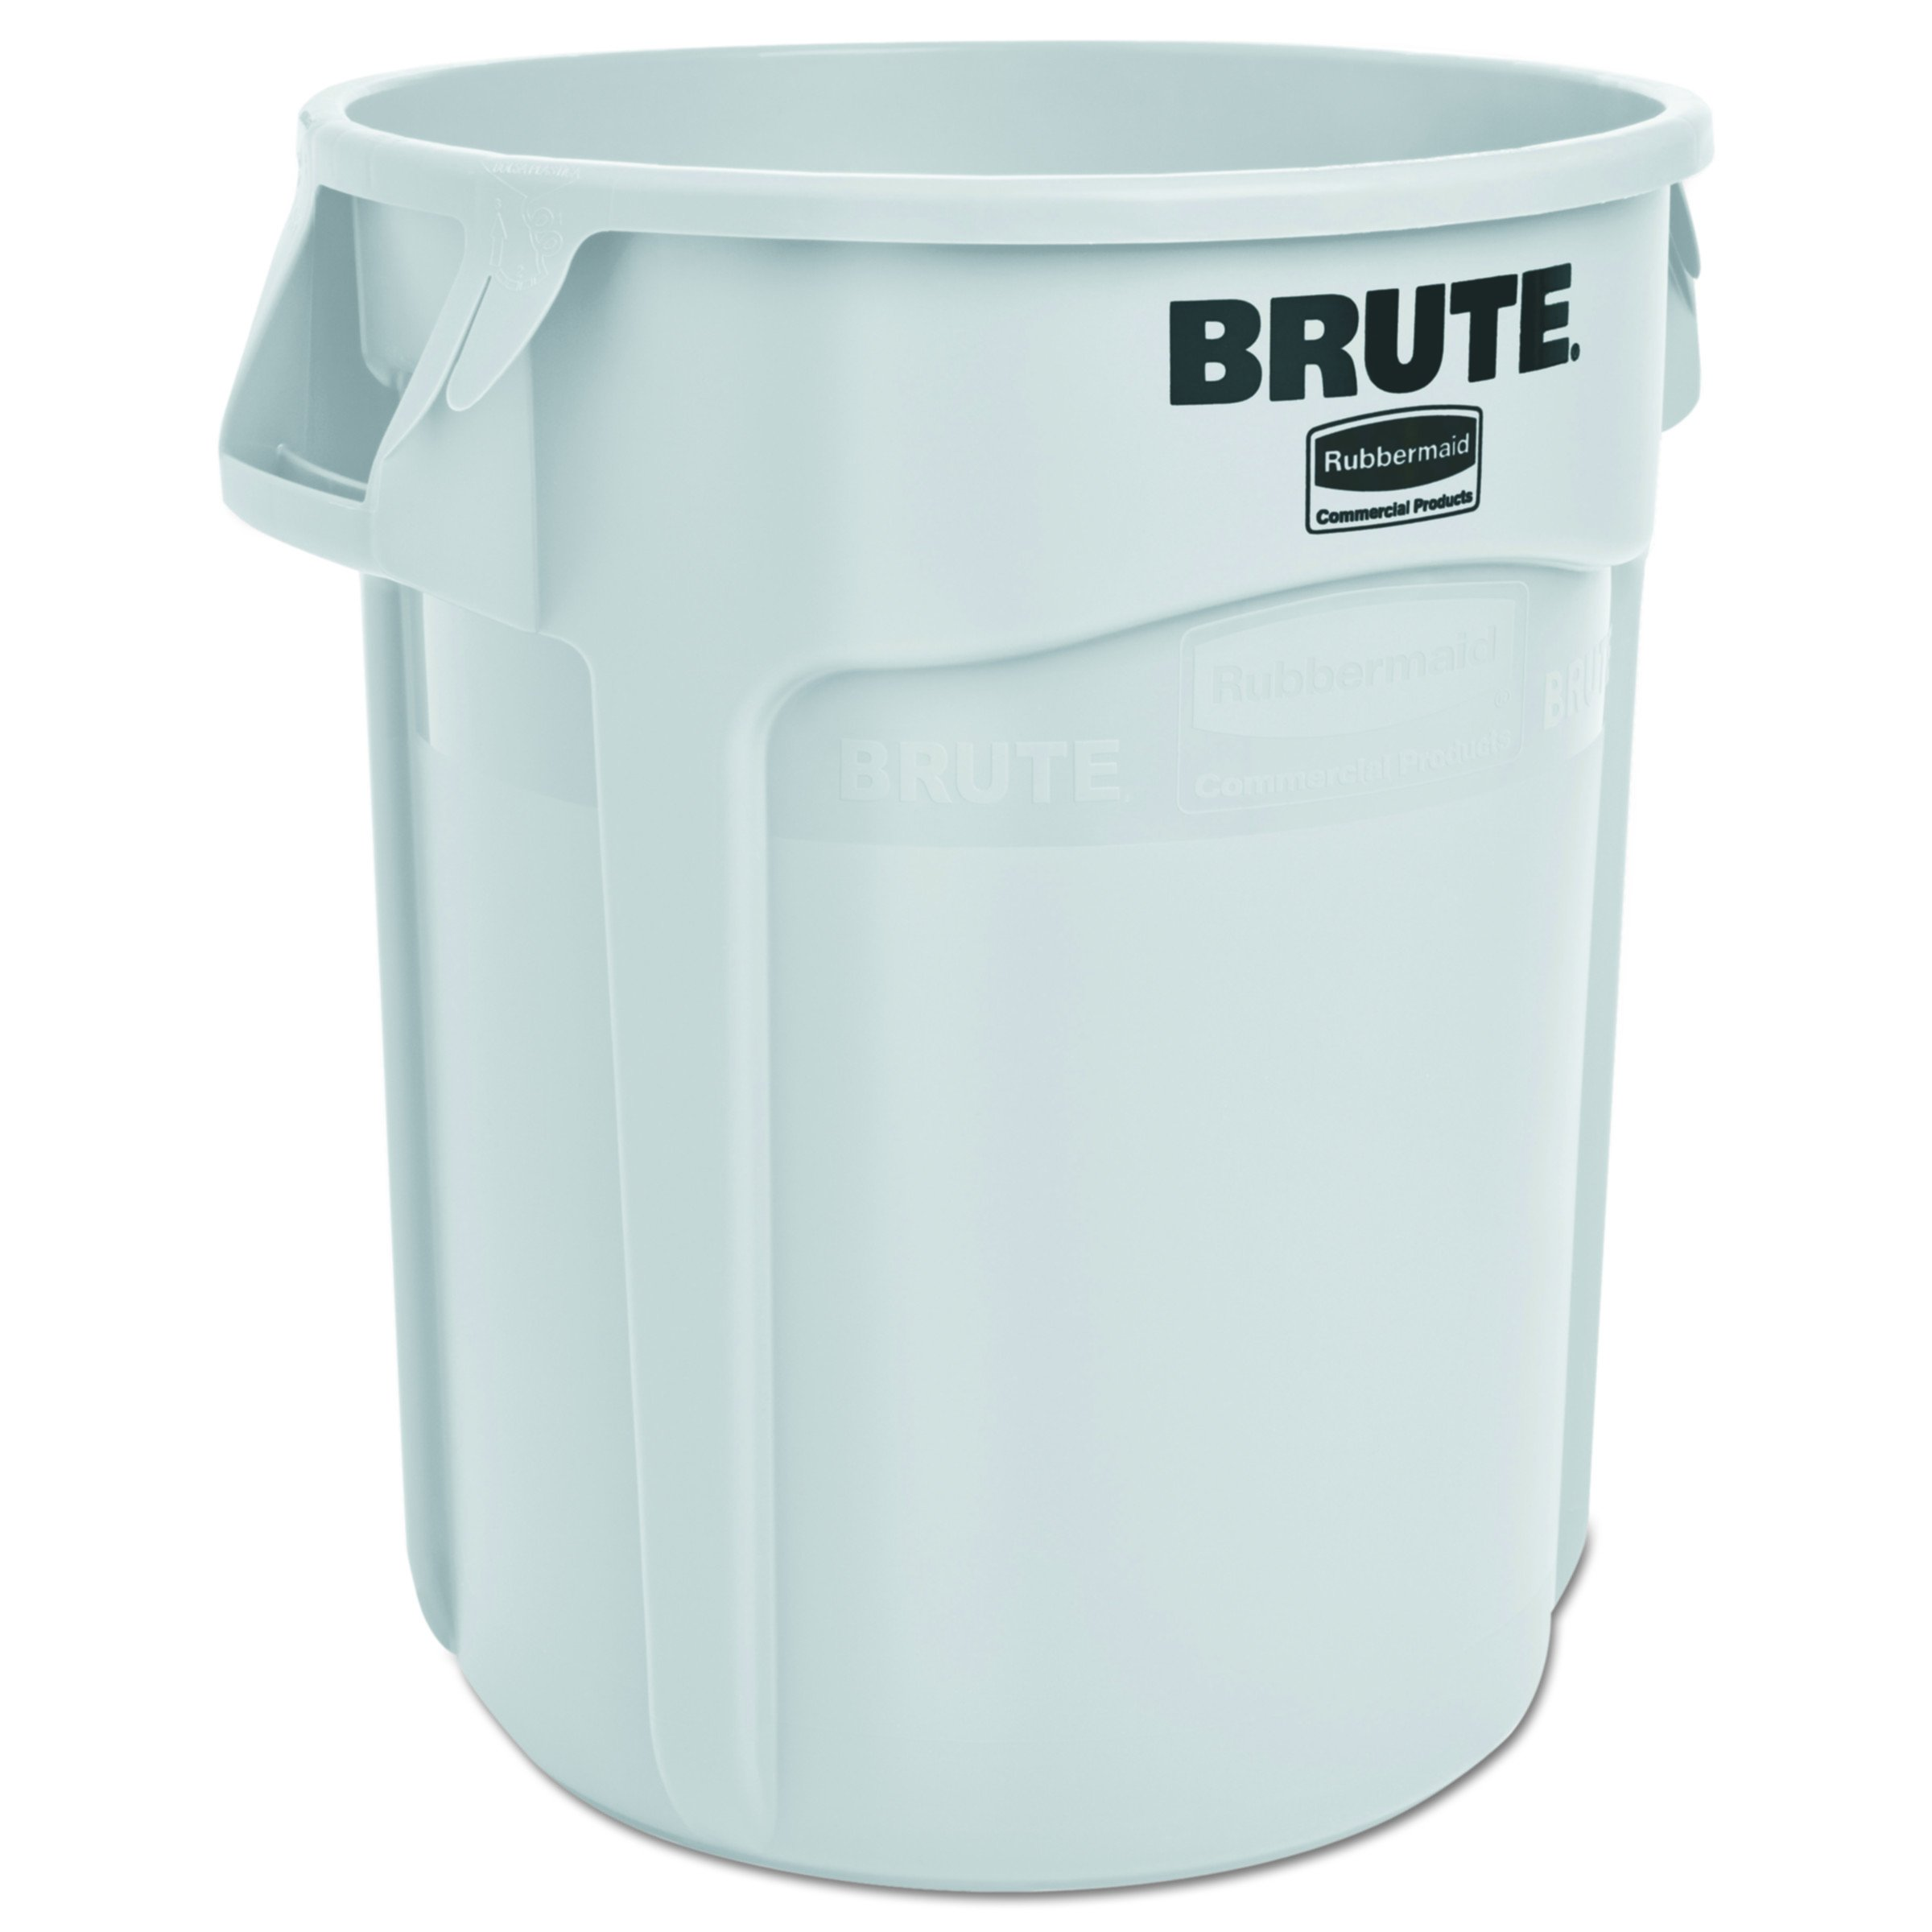 Rubbermaid Commercial RCP 2620 WHI Round Brute Container, Plastic, 20 gal, White